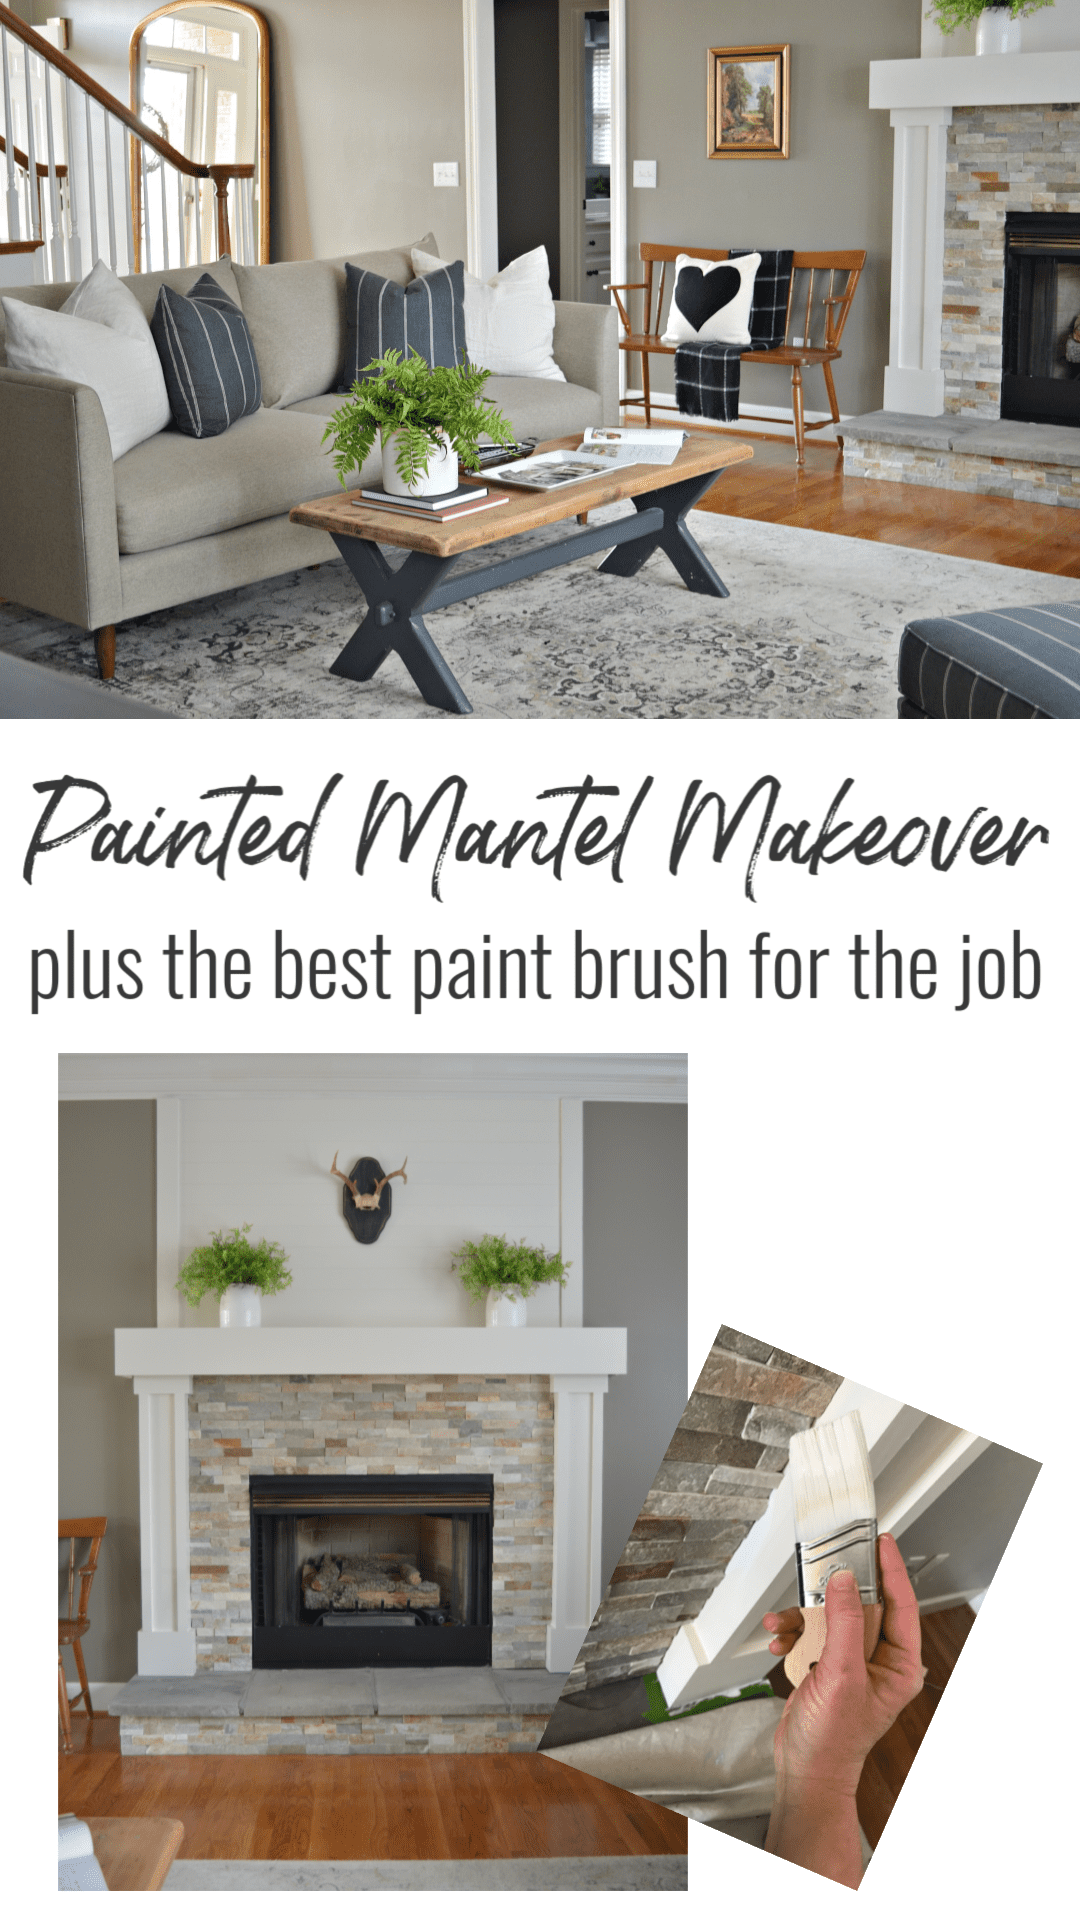 Finding the best paint brush for each project just got easier. Click the photo to see my favorite used on my painted mantel makeover. #diy #diyprojects #paintedprojects